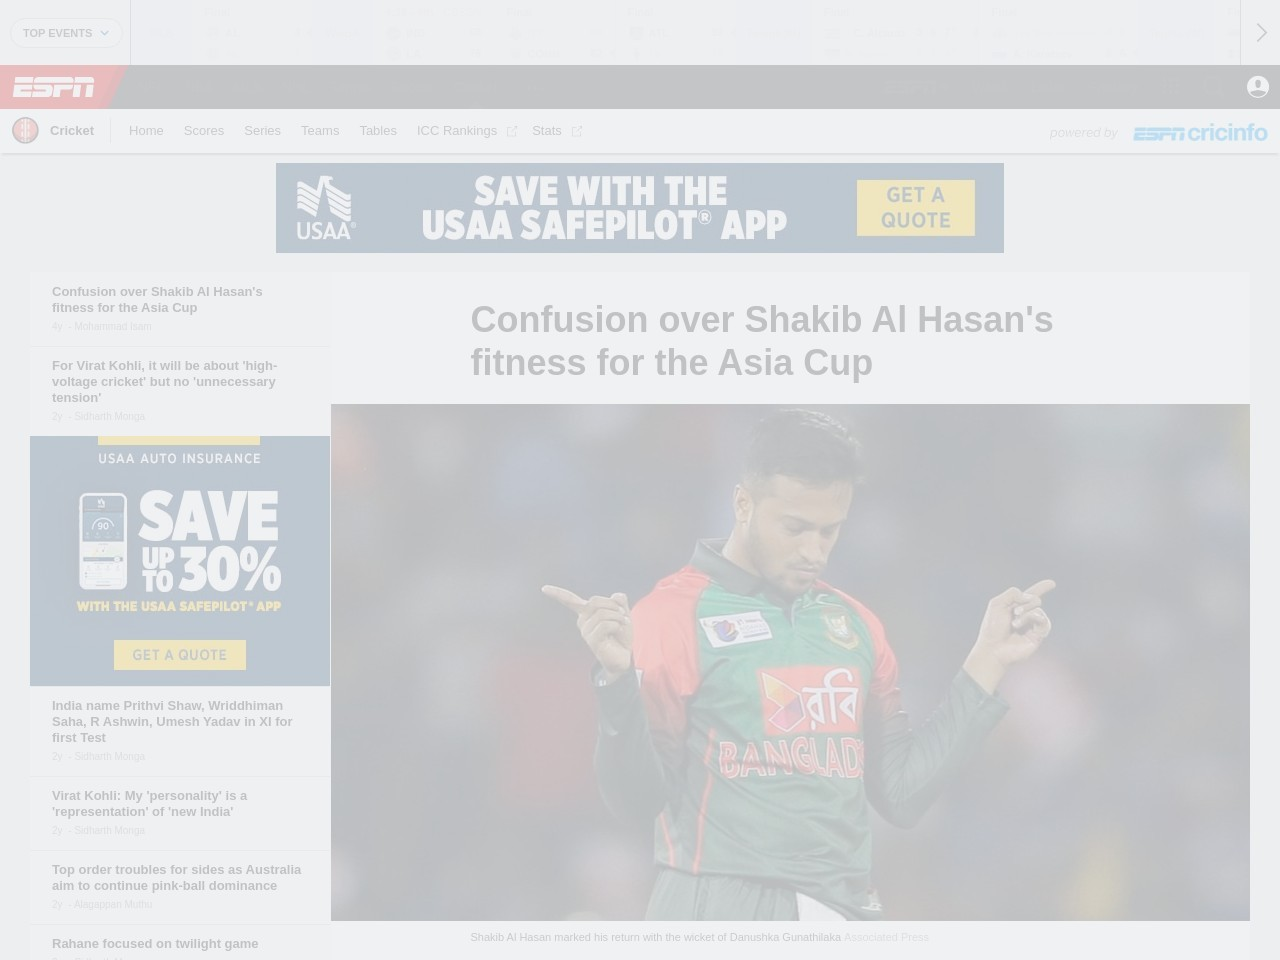 Confusion over Shakib Al Hasan's fitness for the Asia Cup